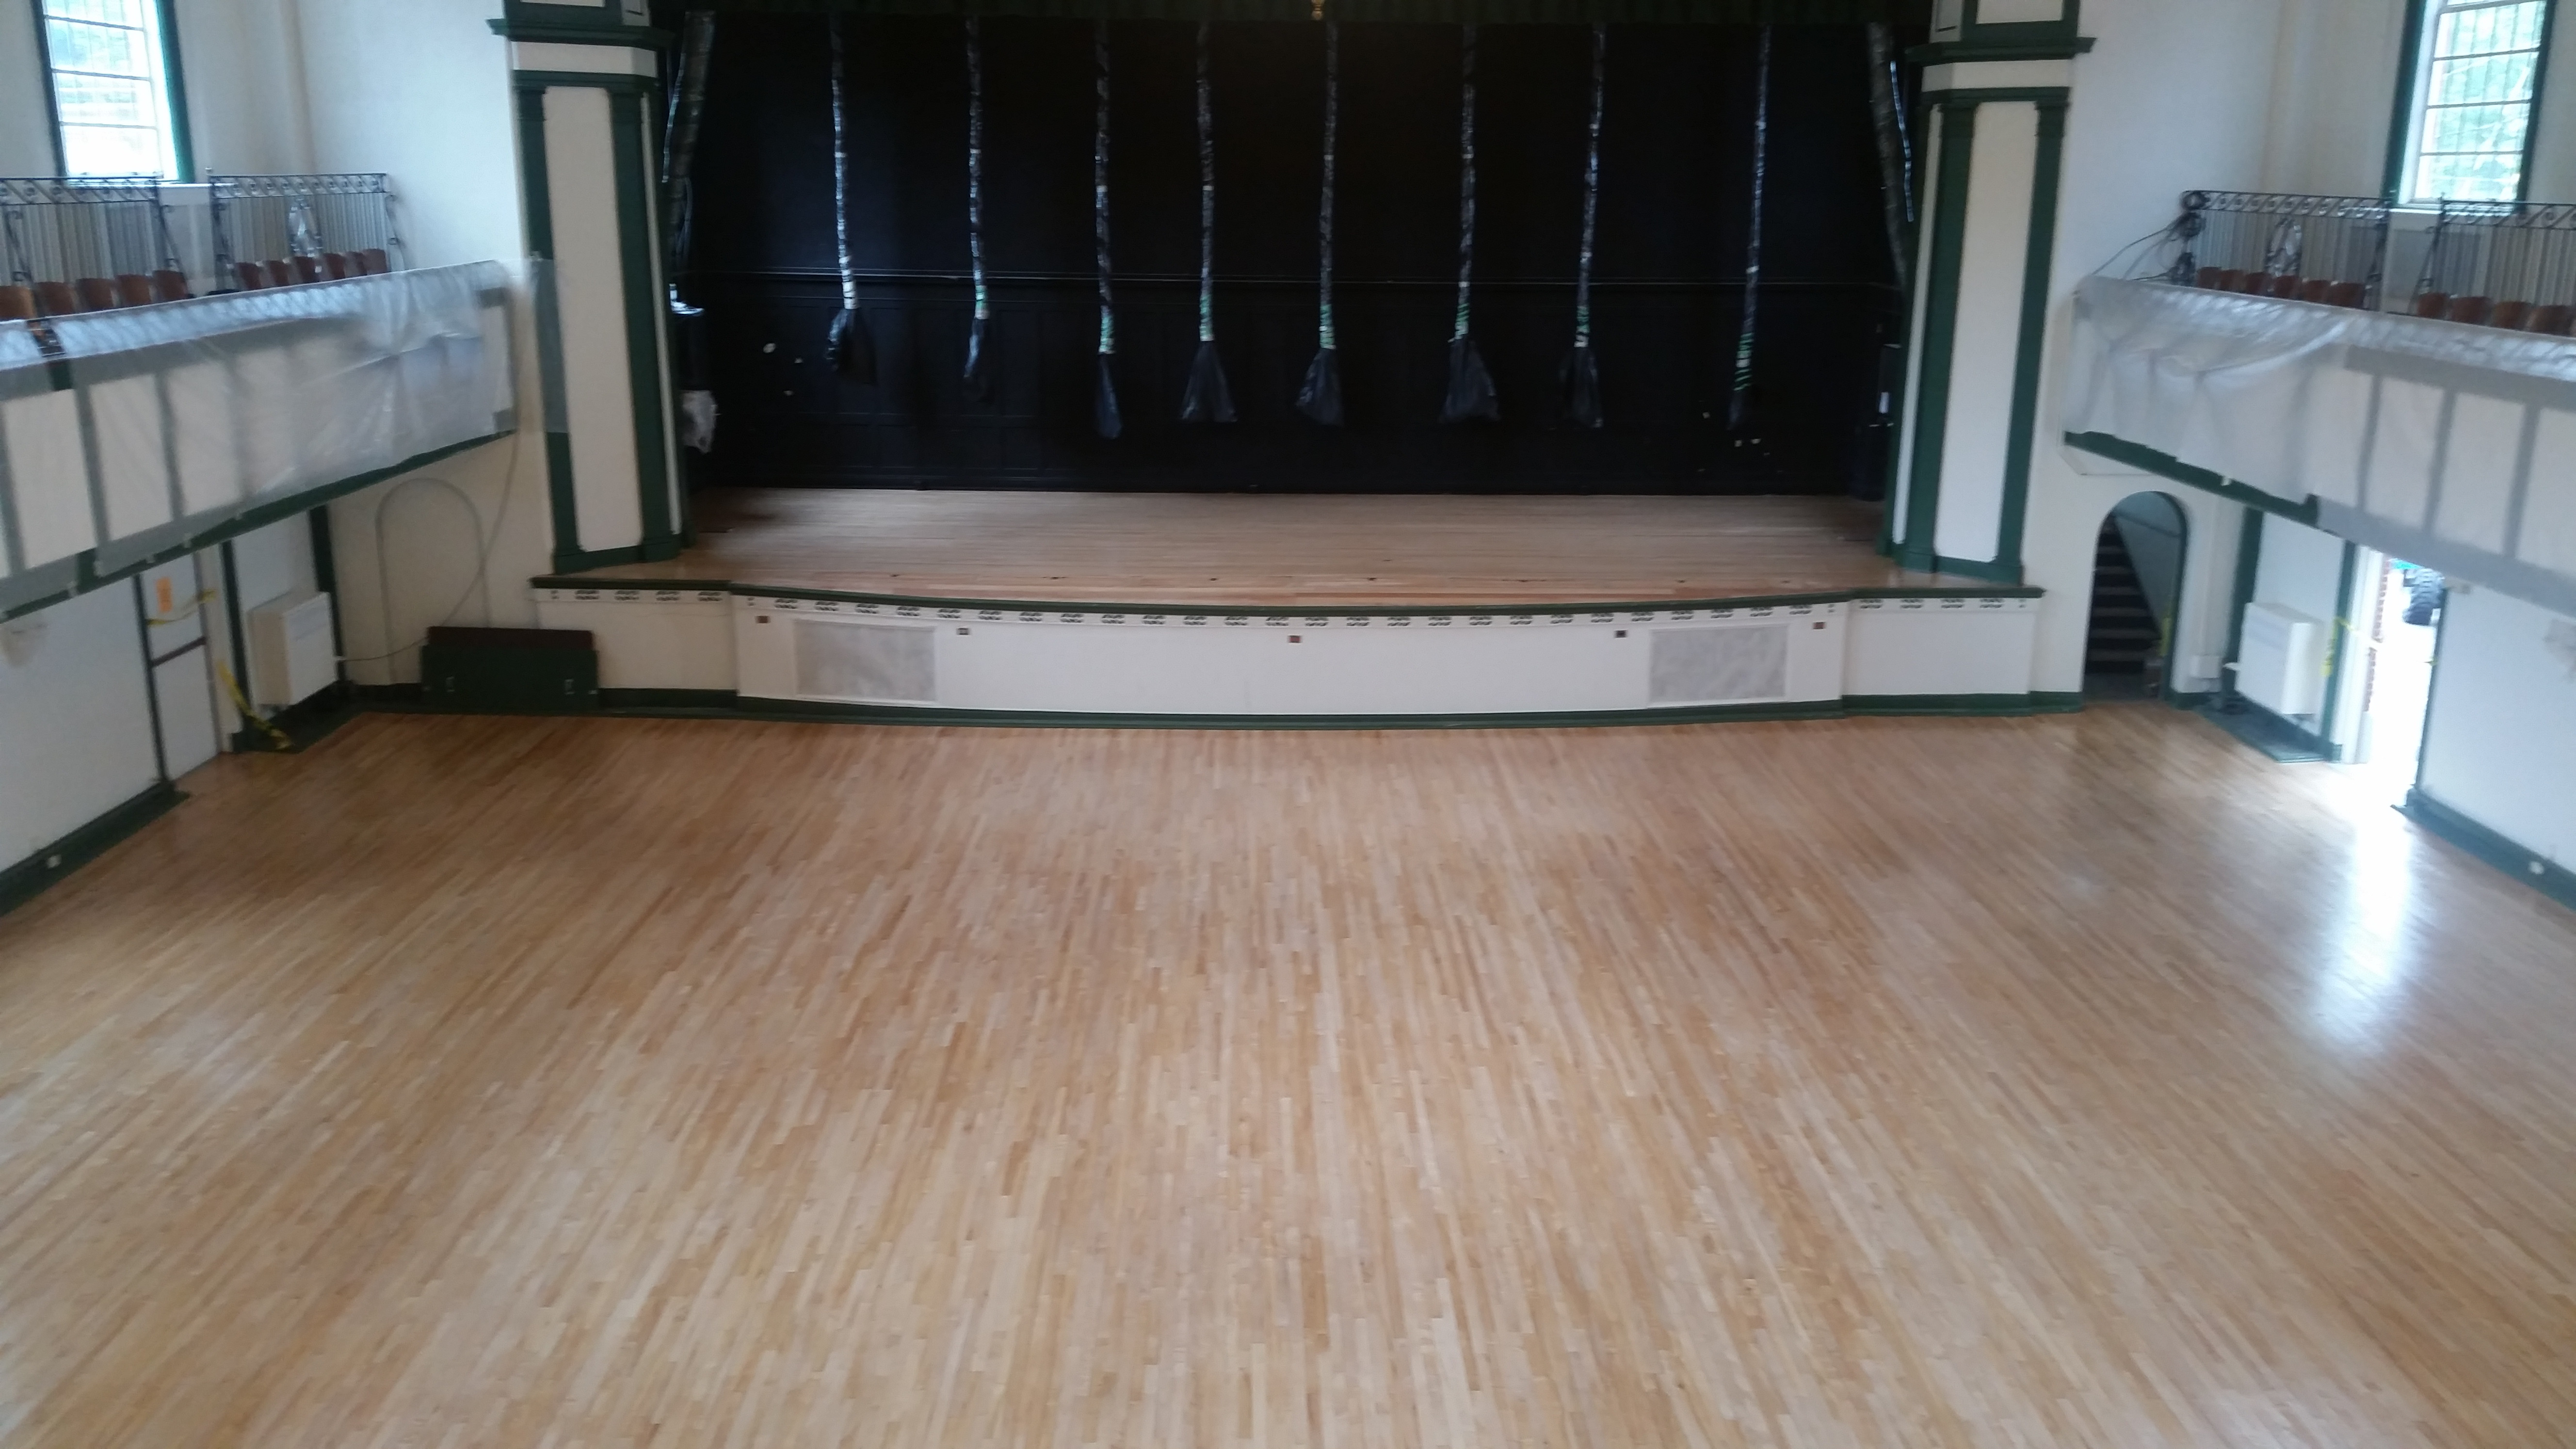 hardwood floor refinishing price calculator of how to refinish wood floors step by step rochester hardwood floors pertaining to how to refinish wood floors step by step rochester hardwood floors of utica home